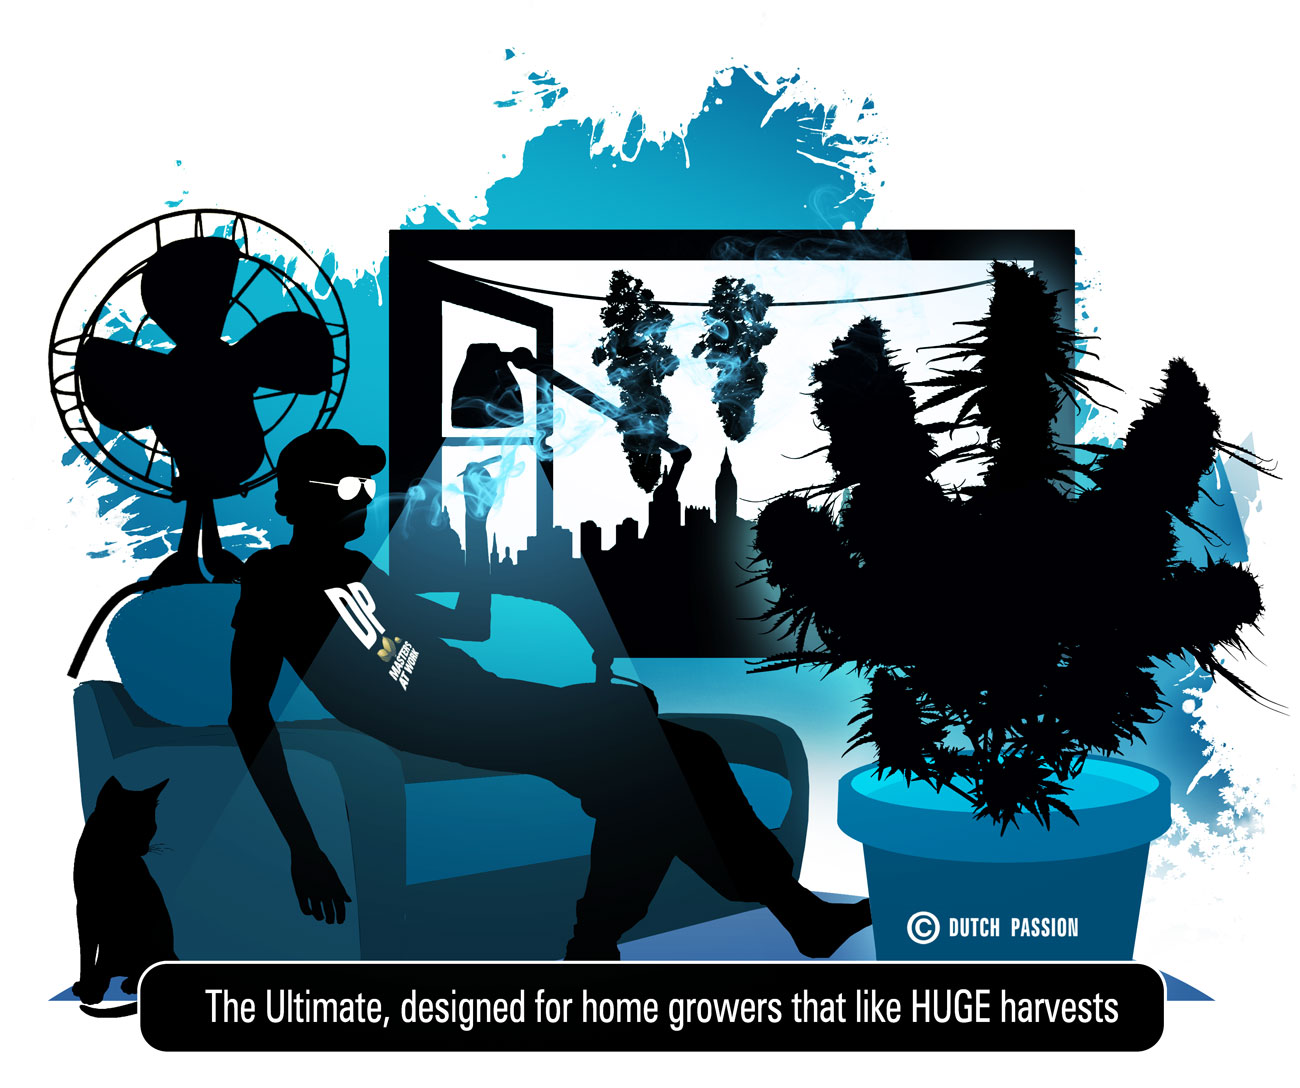 cartoon of the ultimate, the home growers dream